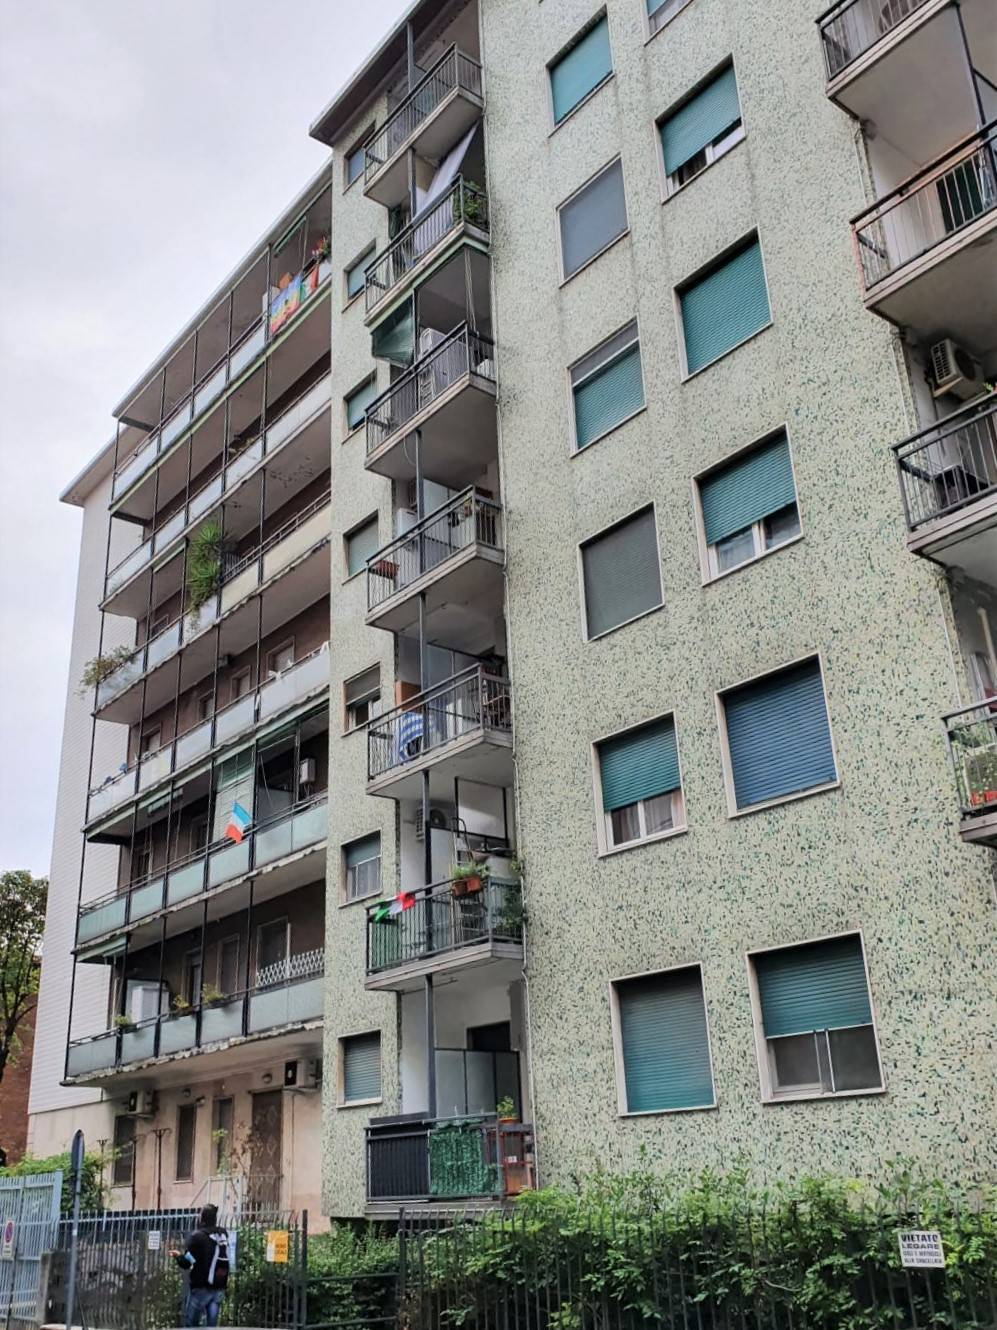 SESTO SAN GIOVANNI, Apartment for sale, Good condition, Heating Centralized, Energetic class: G, Epi: 265,7 kwh/m2 year, placed at 2° on 8, composed